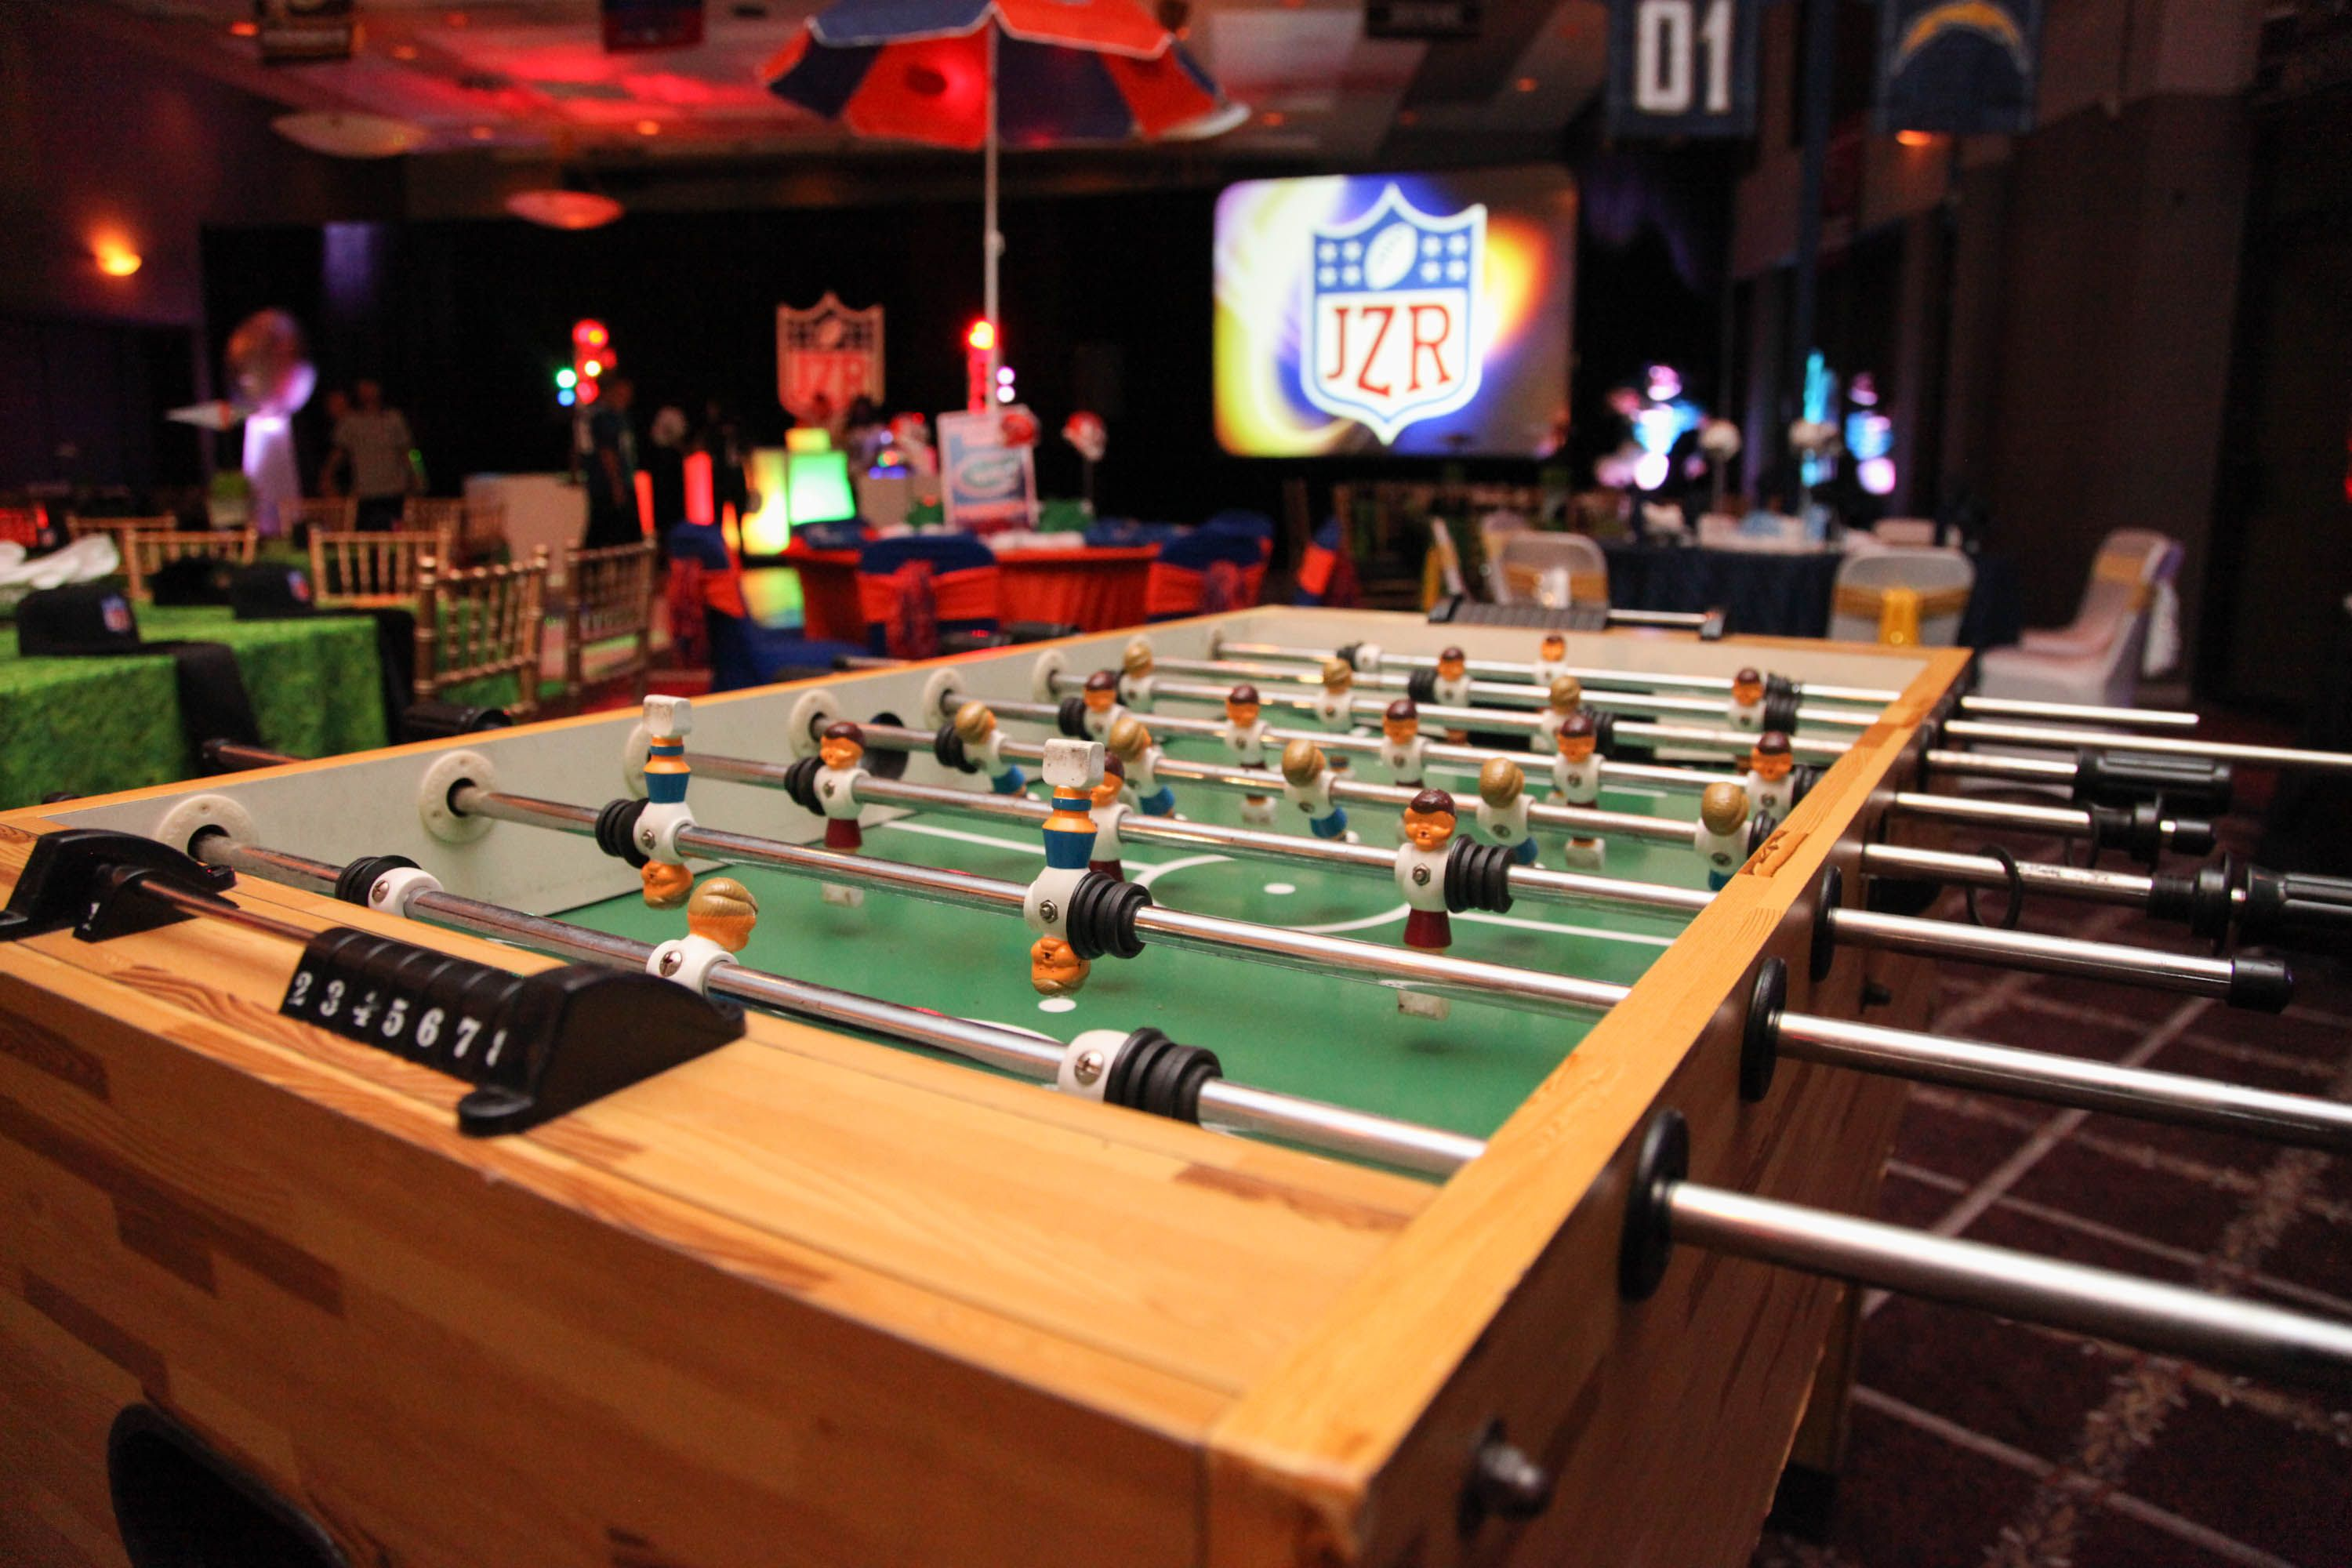 Fooseball Table Is Great Event Entertainment For A Party The - Pool table jacksonville fl